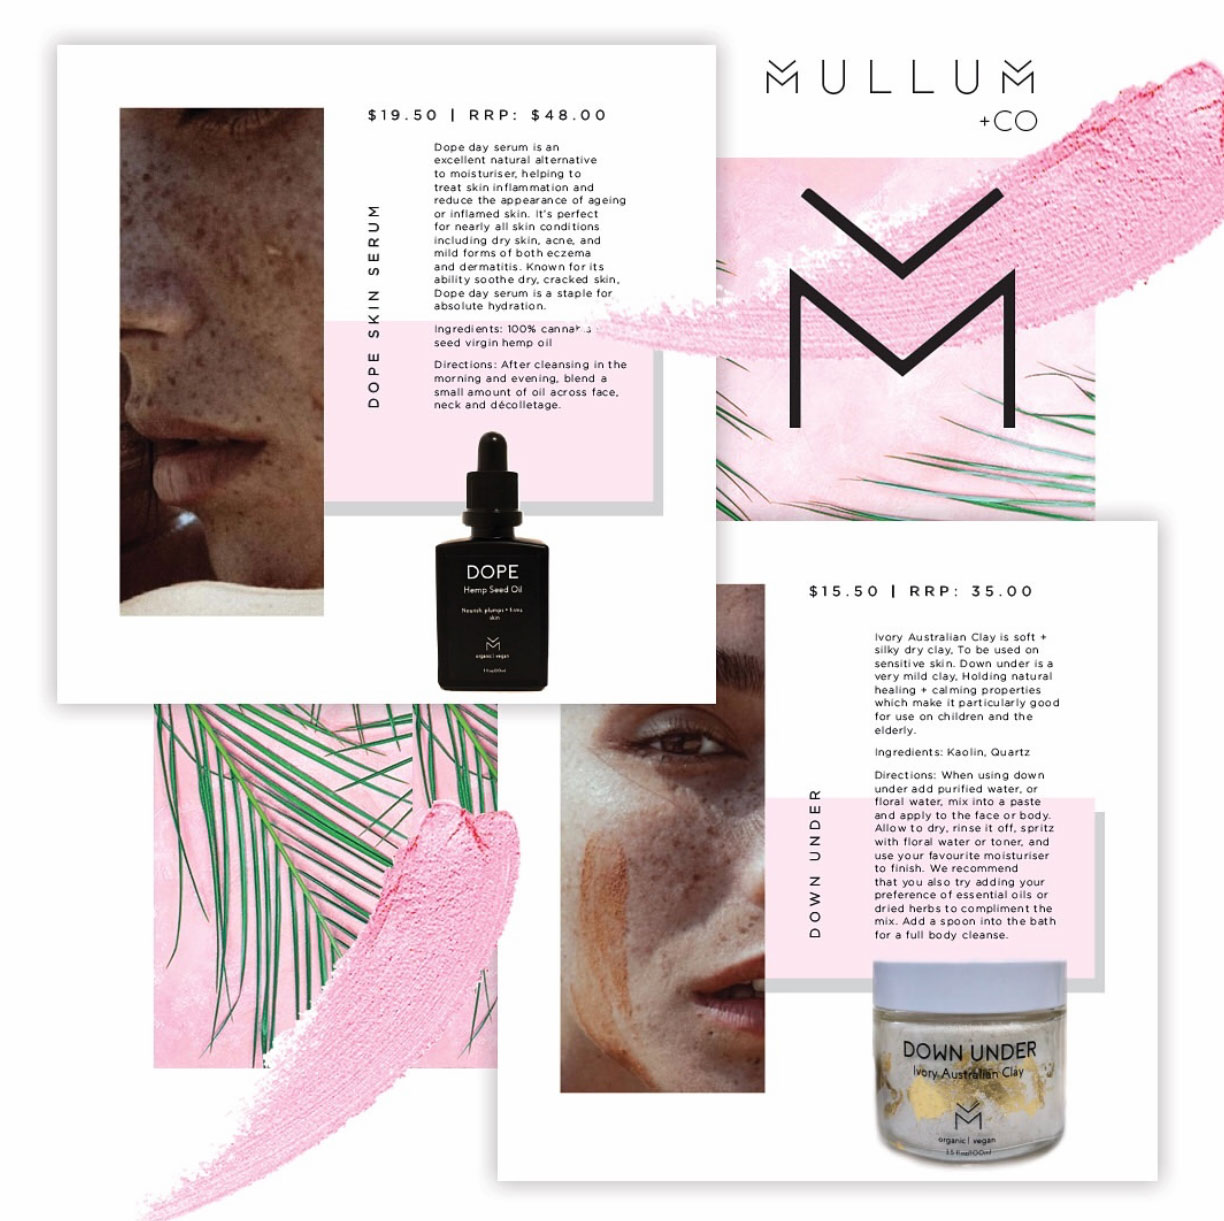 Mullum + Co Media Kit